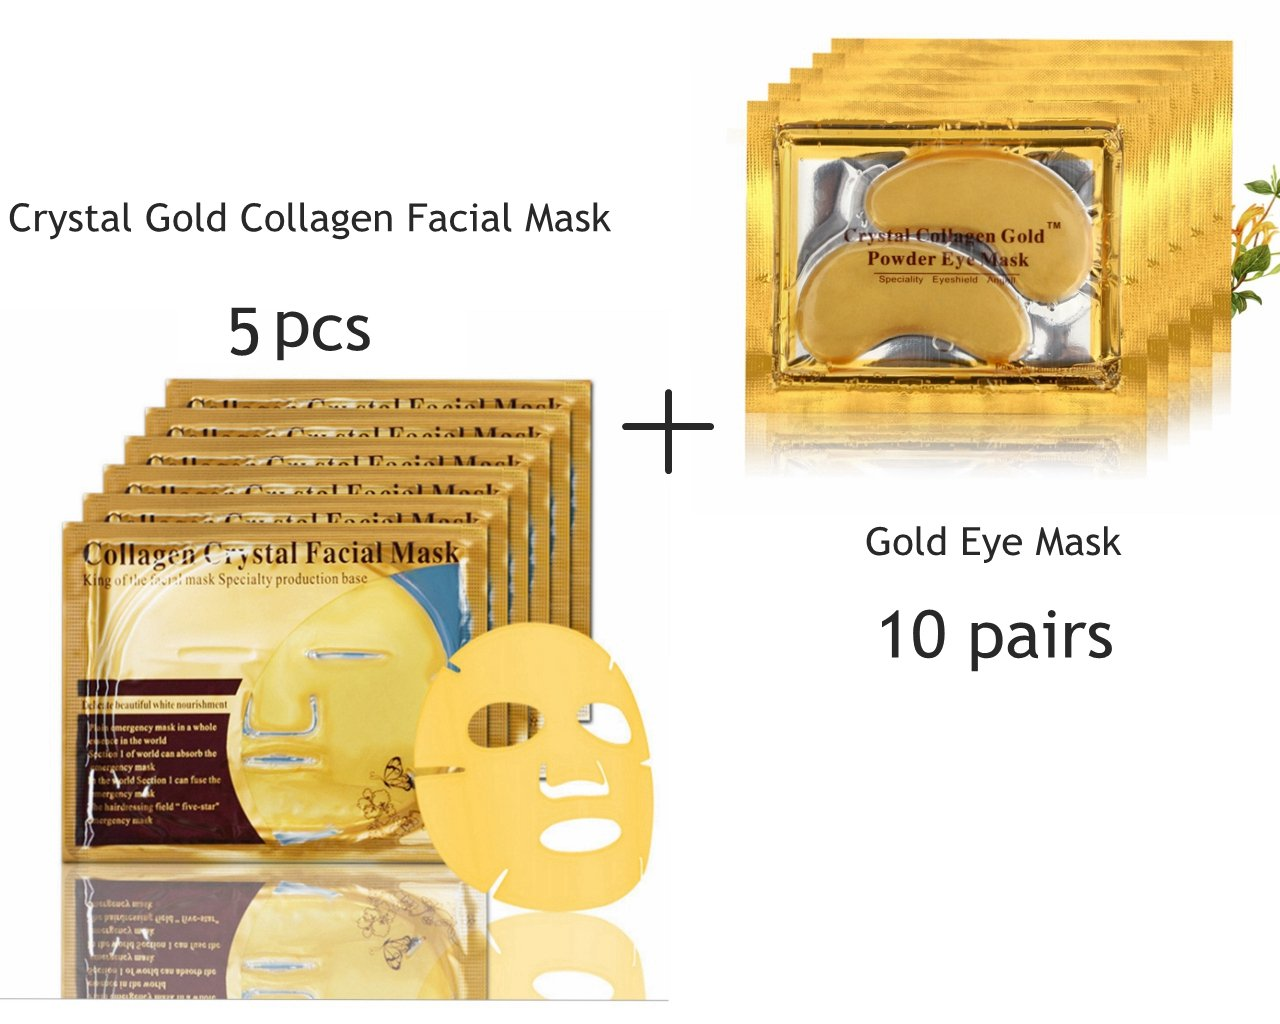 24K Gold Collagen Mask, 5 Packs Facial Mask + 10 Pairs Gold Eye Mask Anti-Wrinkle Dark Circles and Puffins Skin Whitening & Moisturizing Treatment - Bio-collagen Crystal Facial Mask